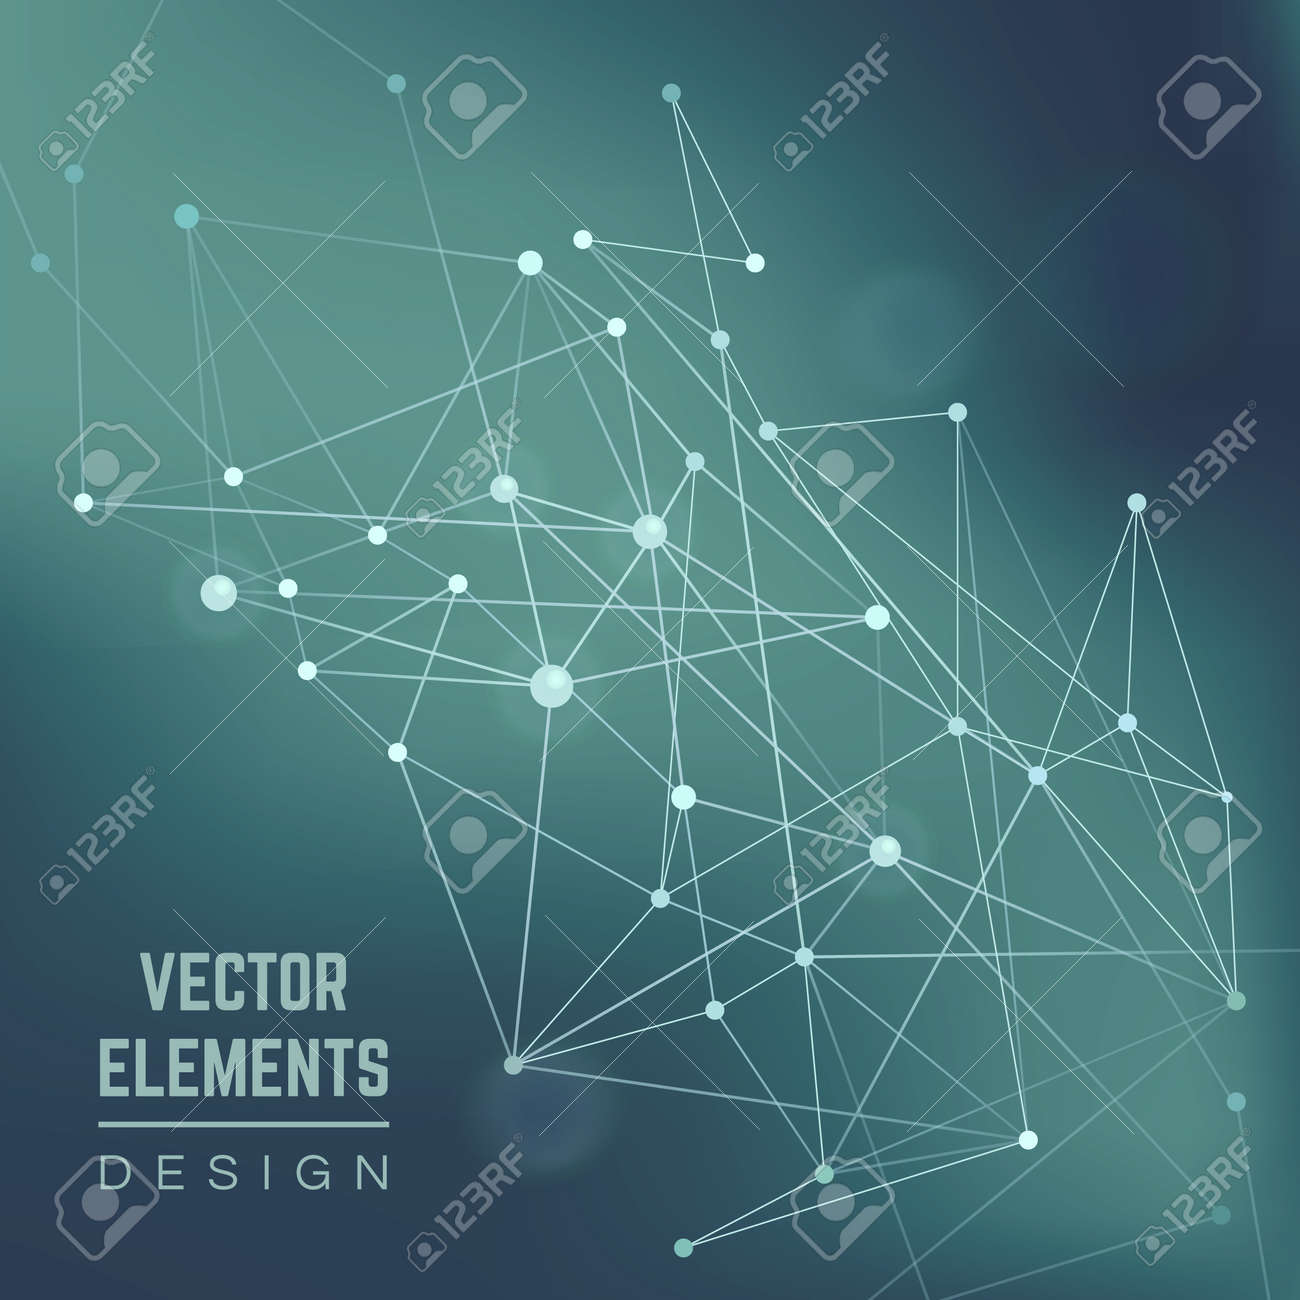 Molecule structure. Connection chemistry, science and research, technology illustration . Abstract vector background - 166762471